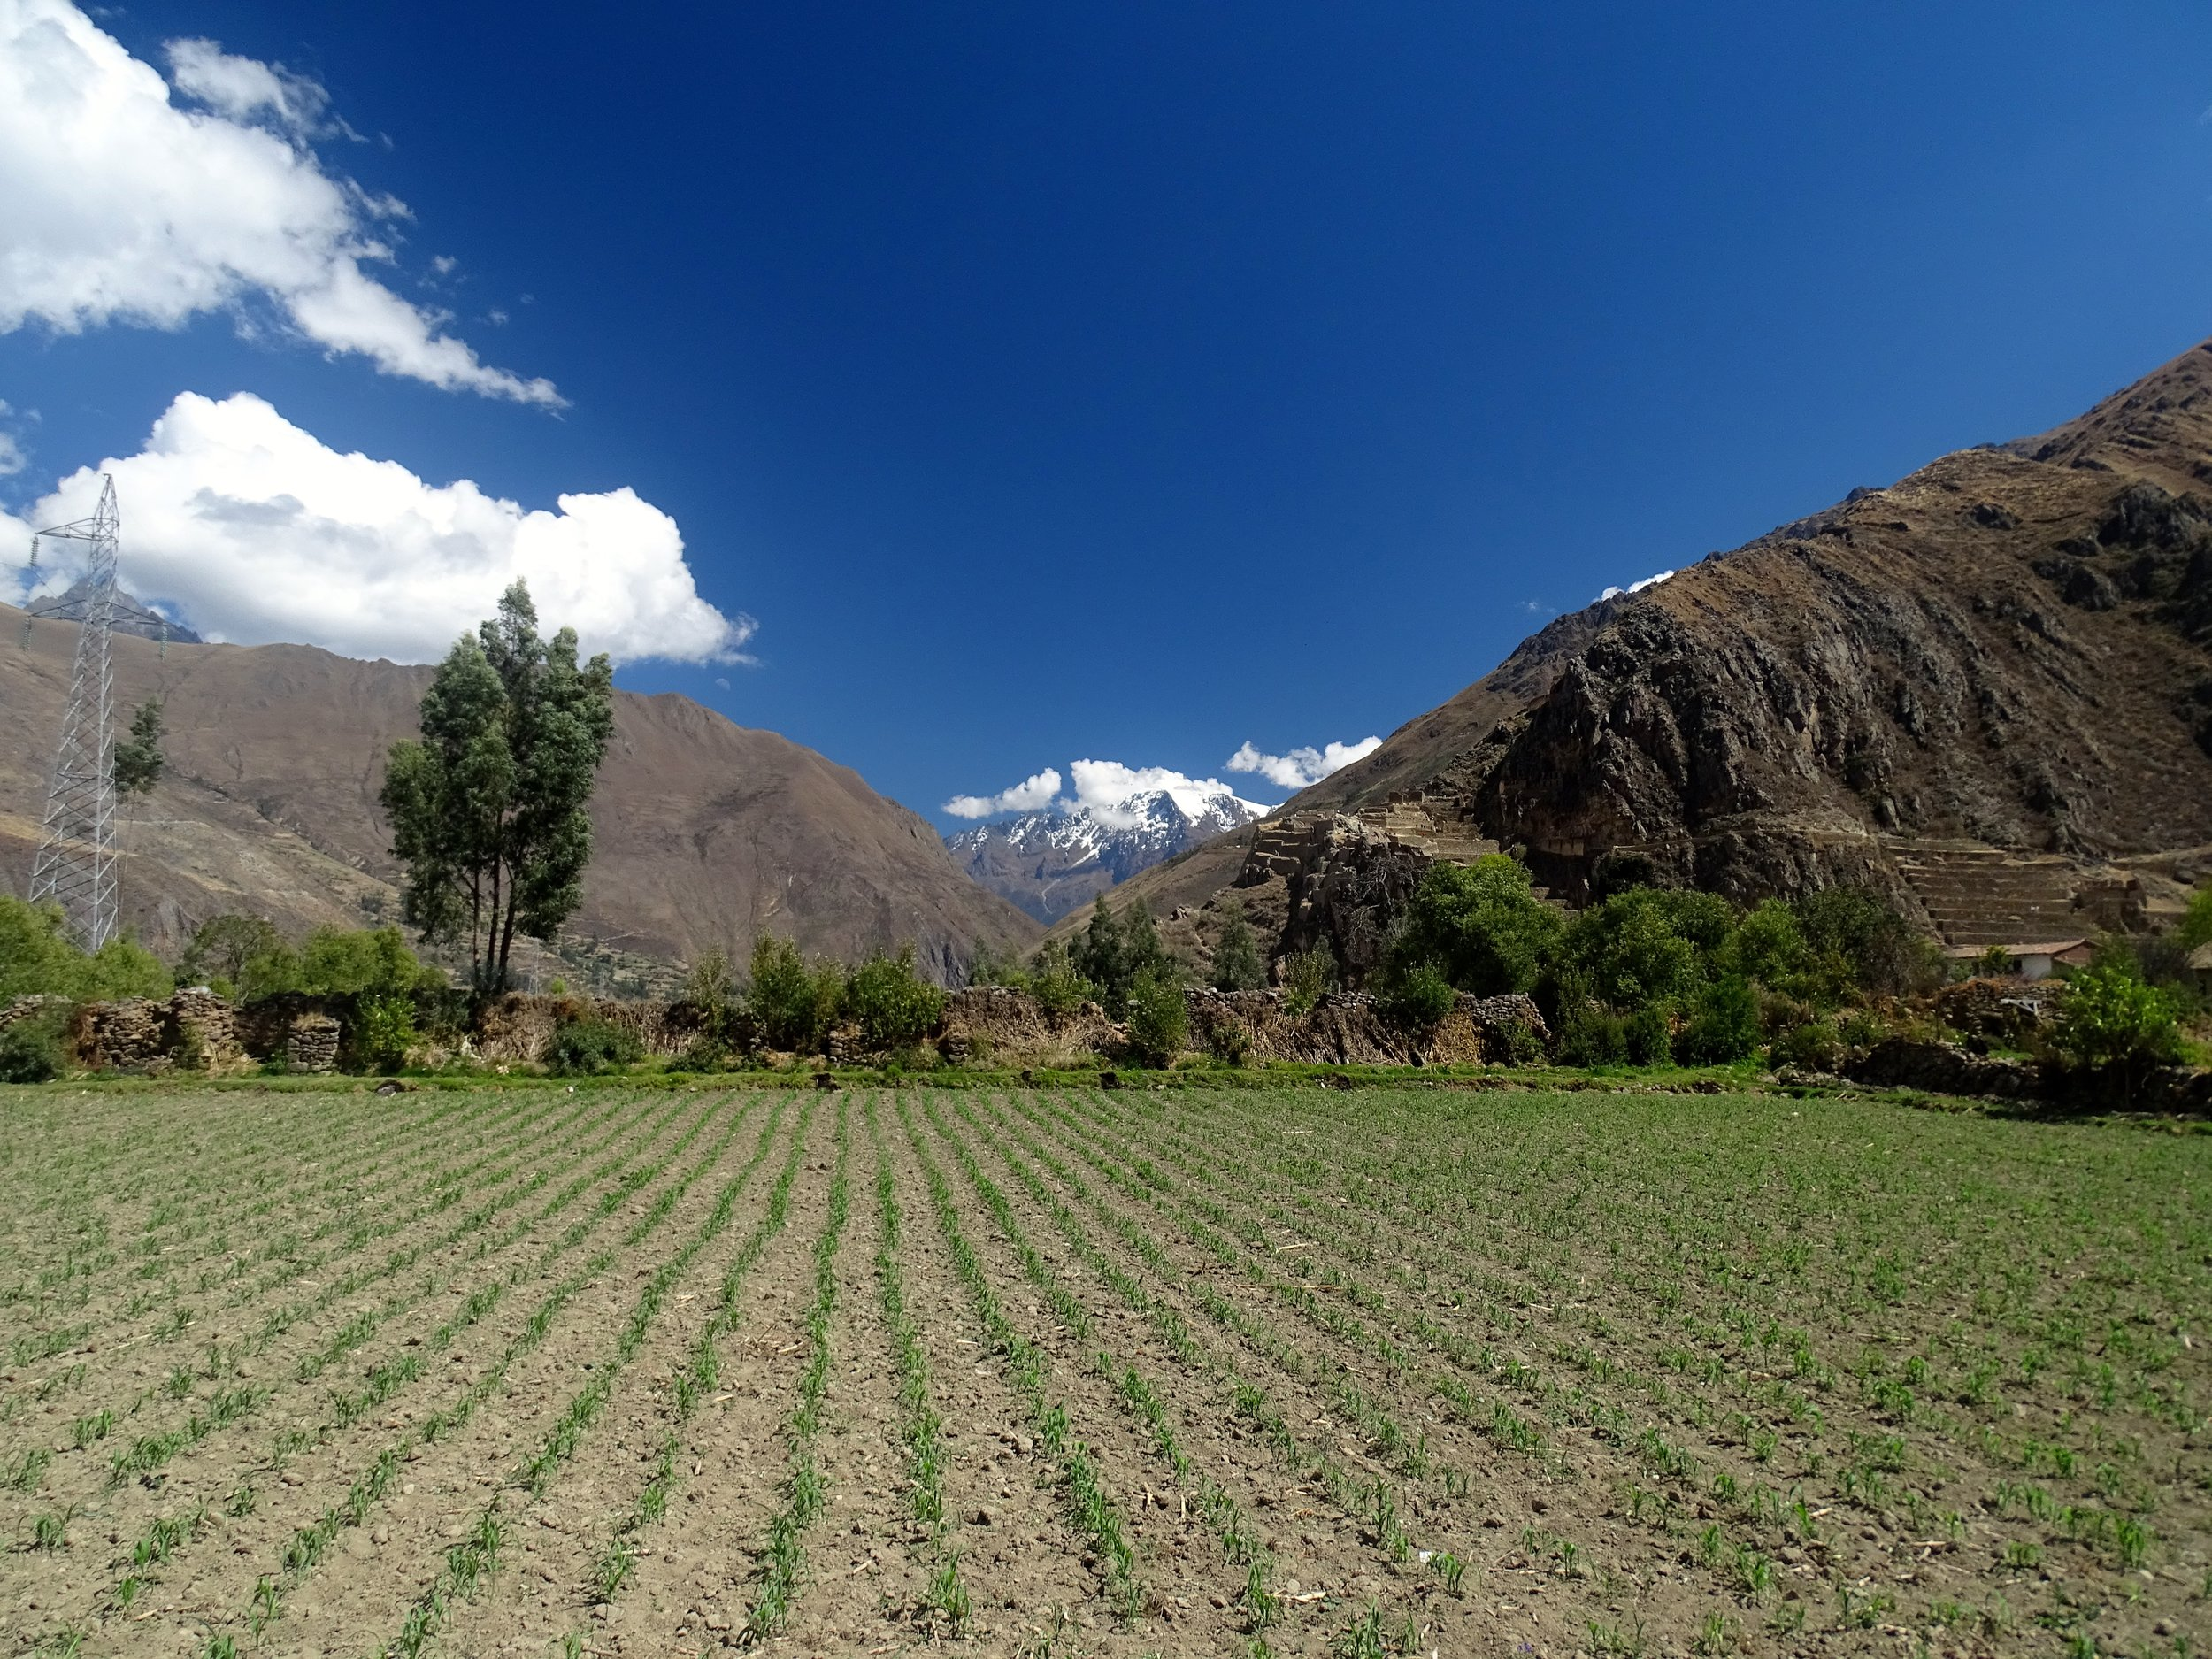 Corn fields and Incan ruins in Ollantaytambo.